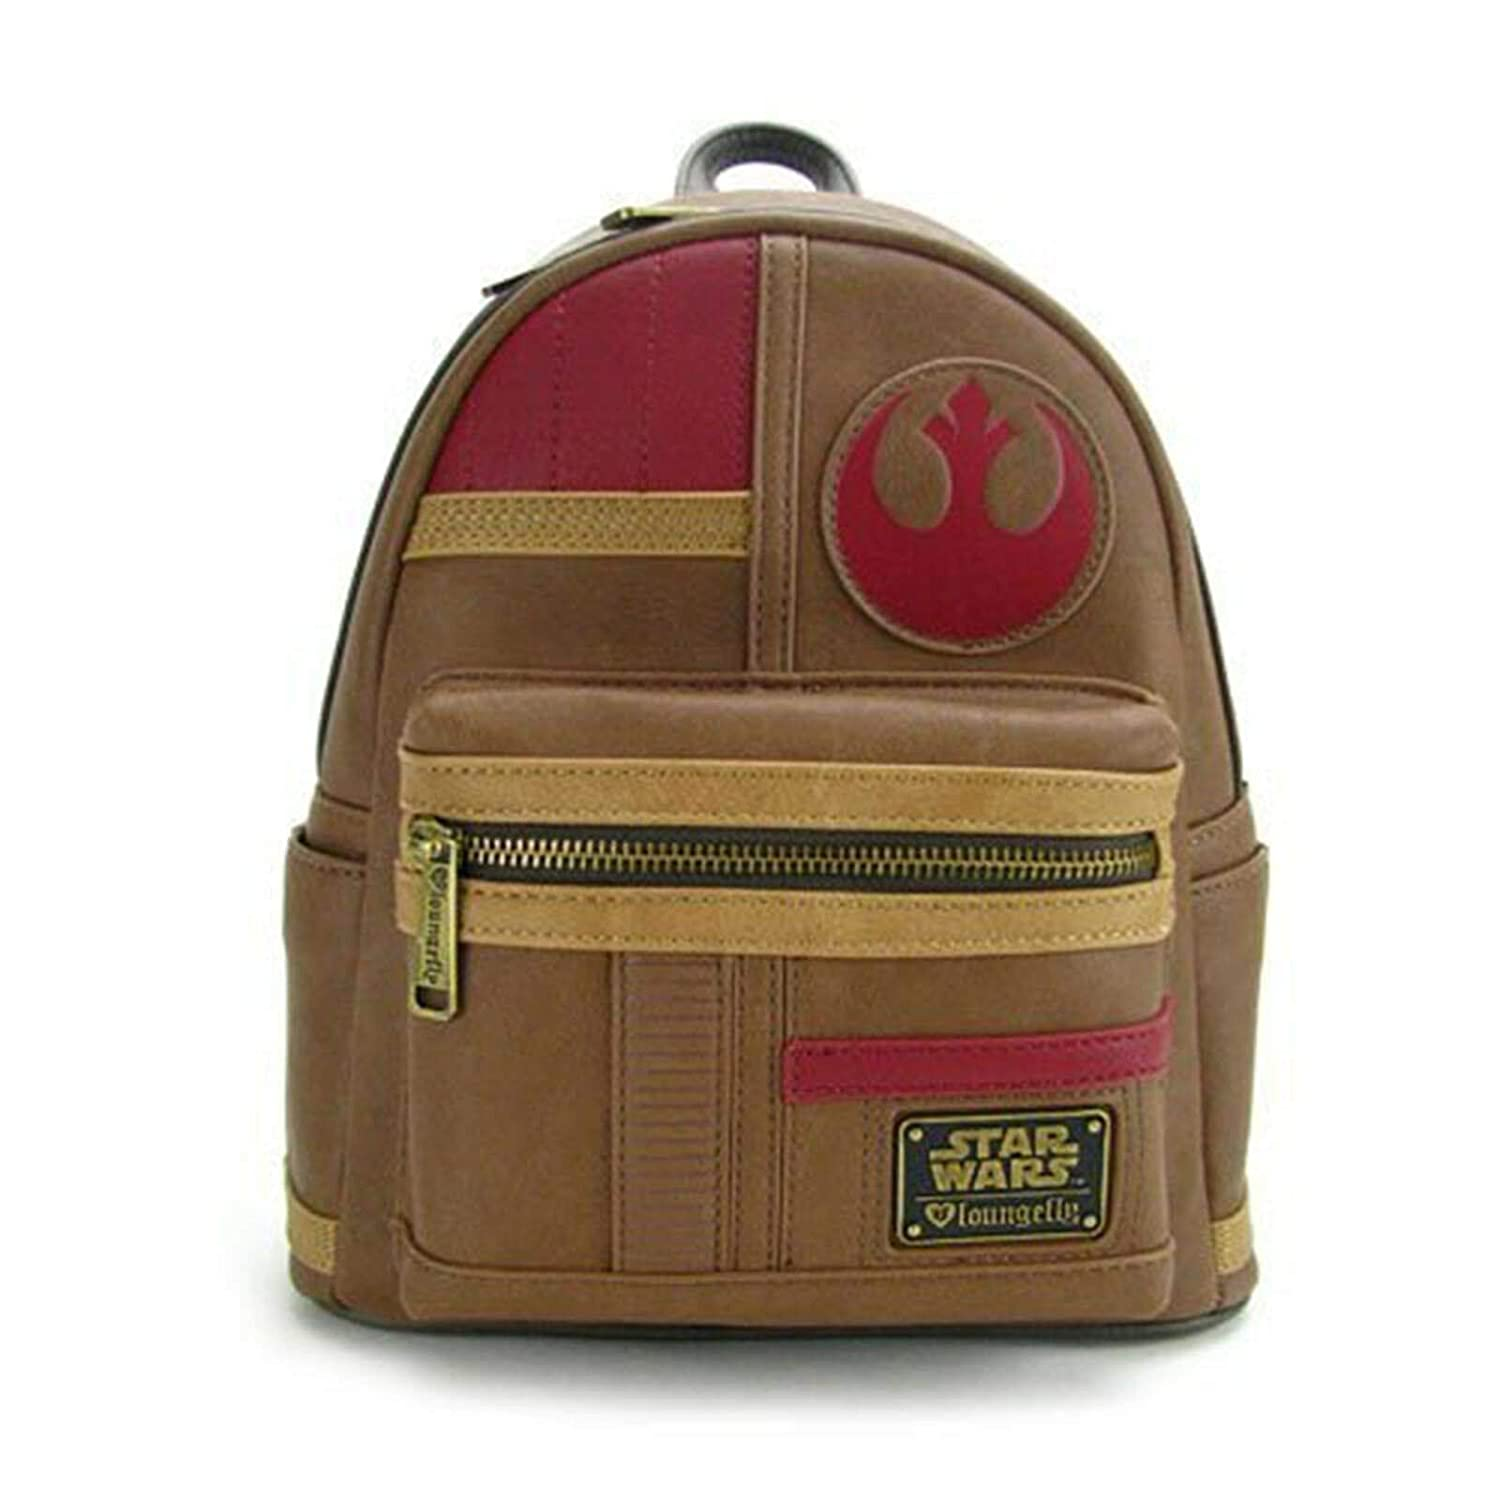 0fb0f1789c0 Amazon.com  Loungefly Star Wars The Last Jedi Rebel Finn Mini Backpack   Toys   Games